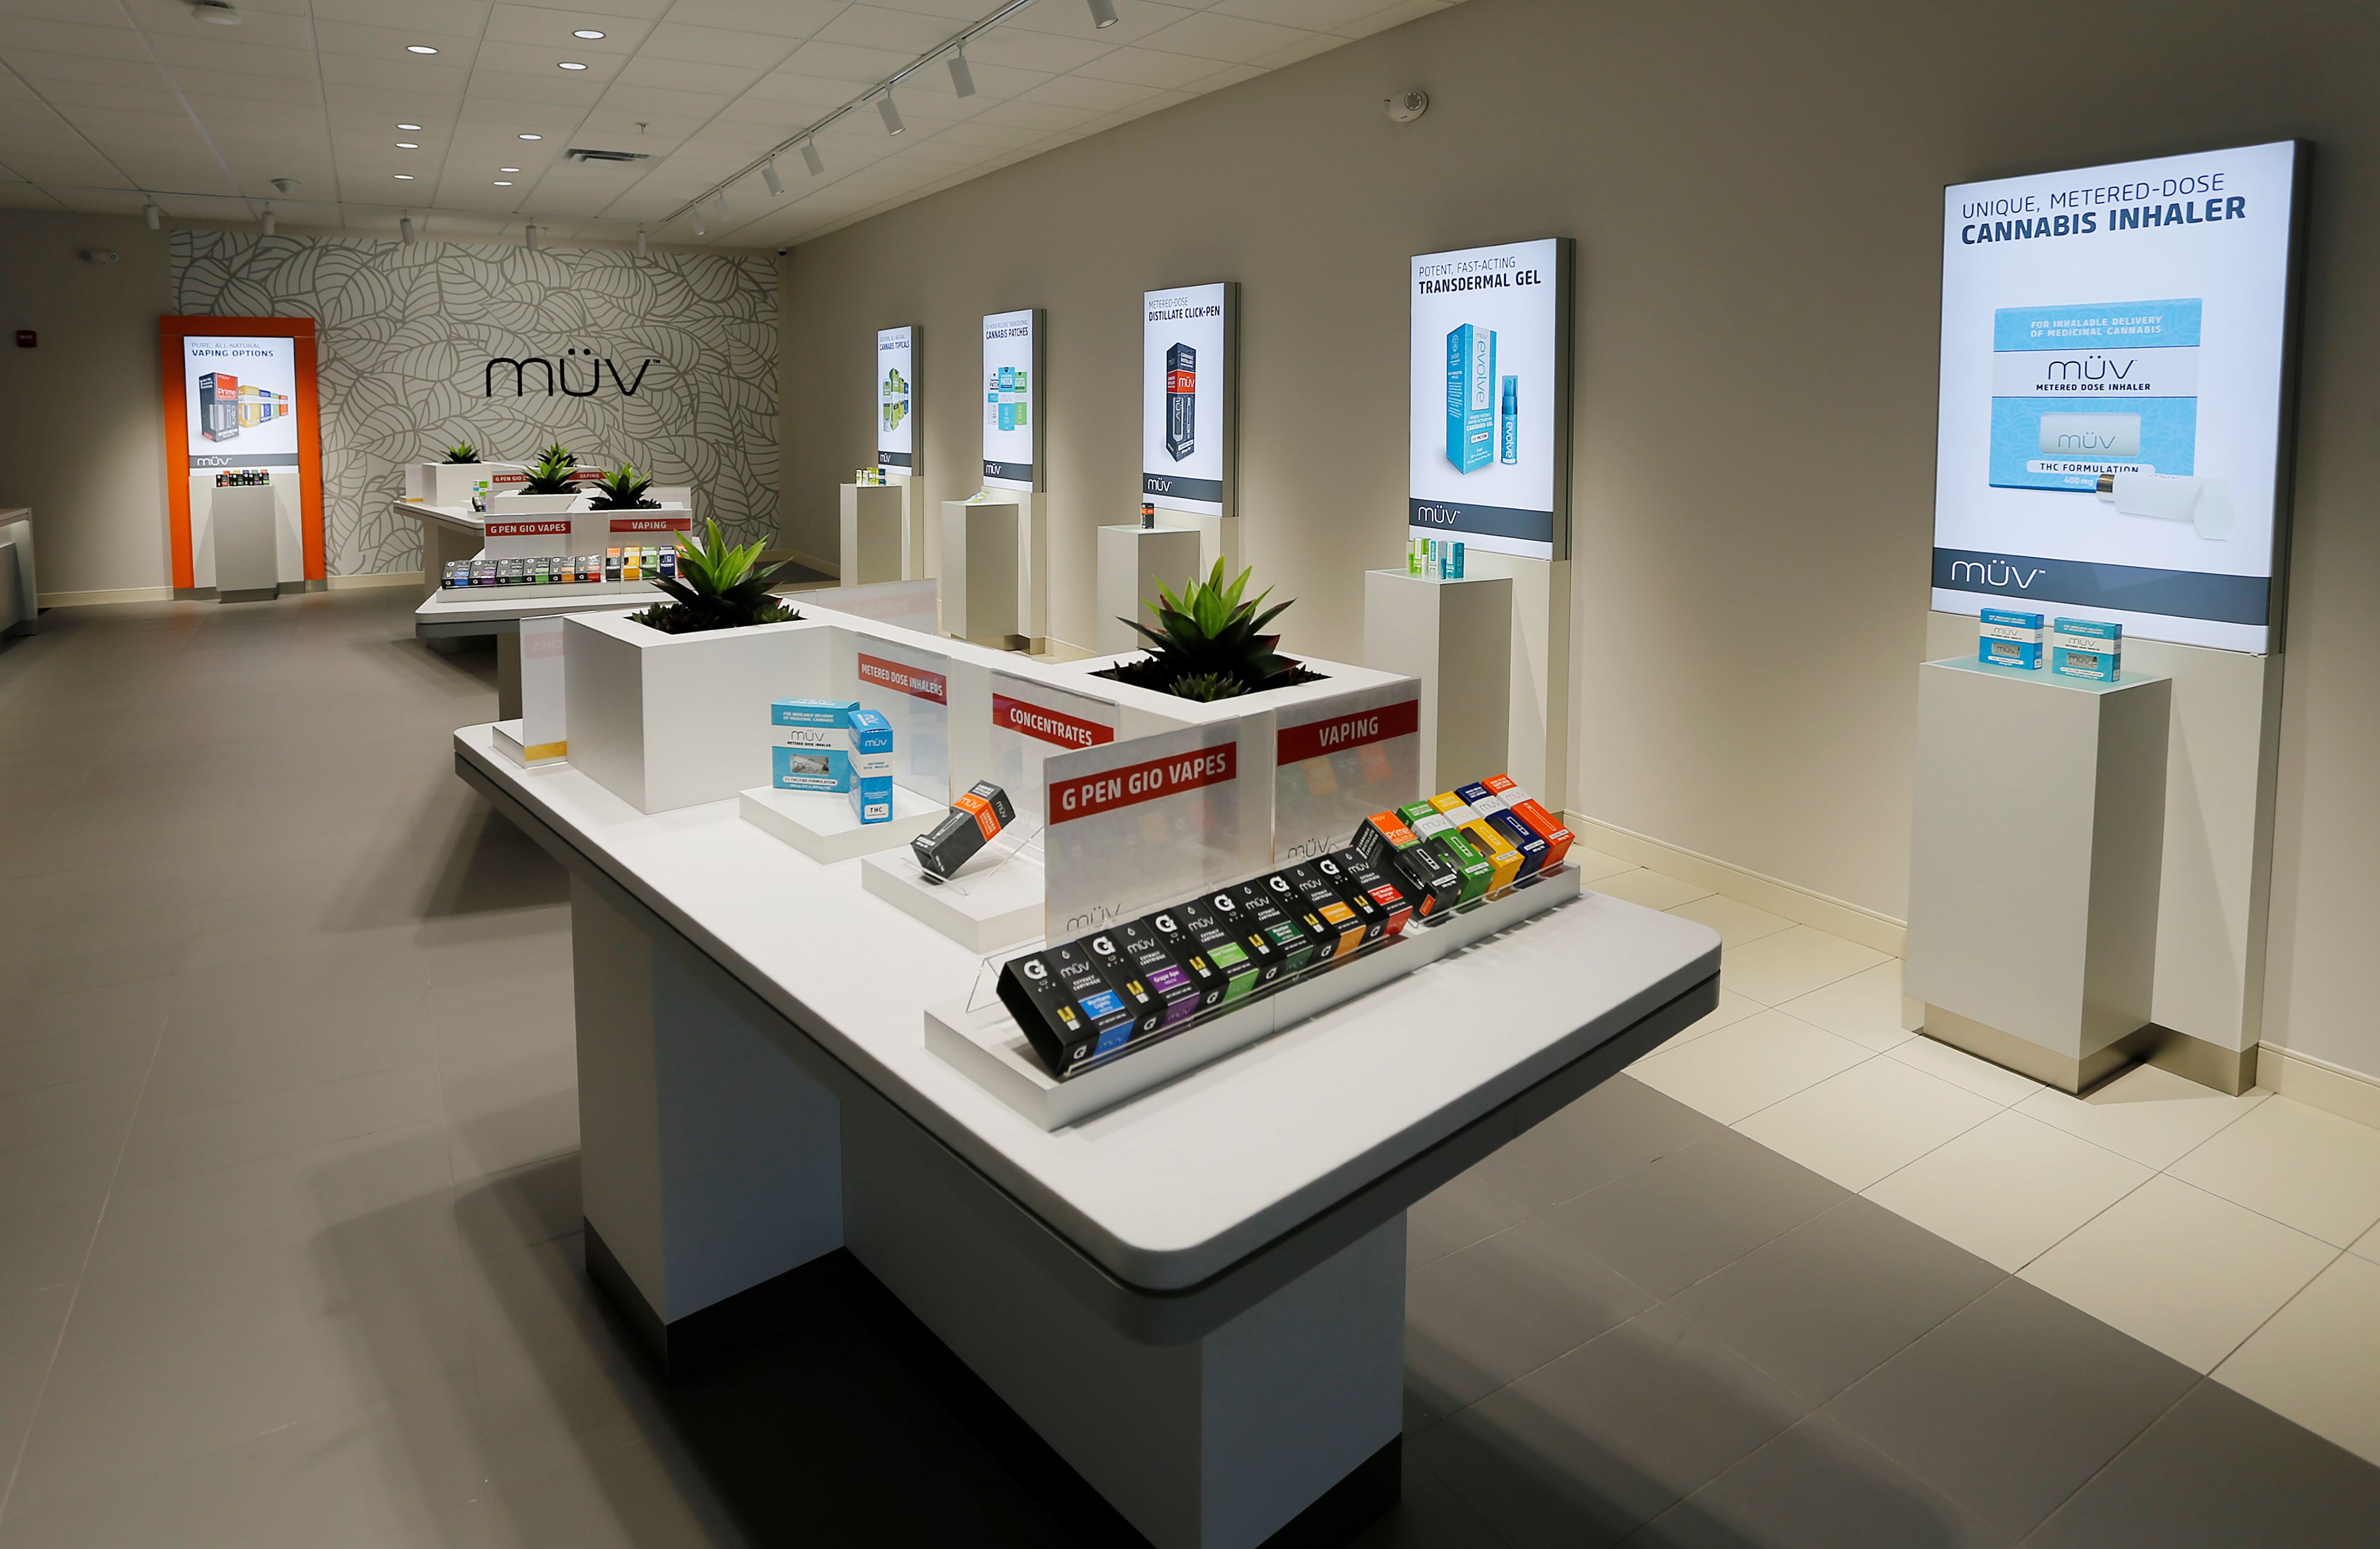 AltMed Florida Opens the First Medical Cannabis Dispensary